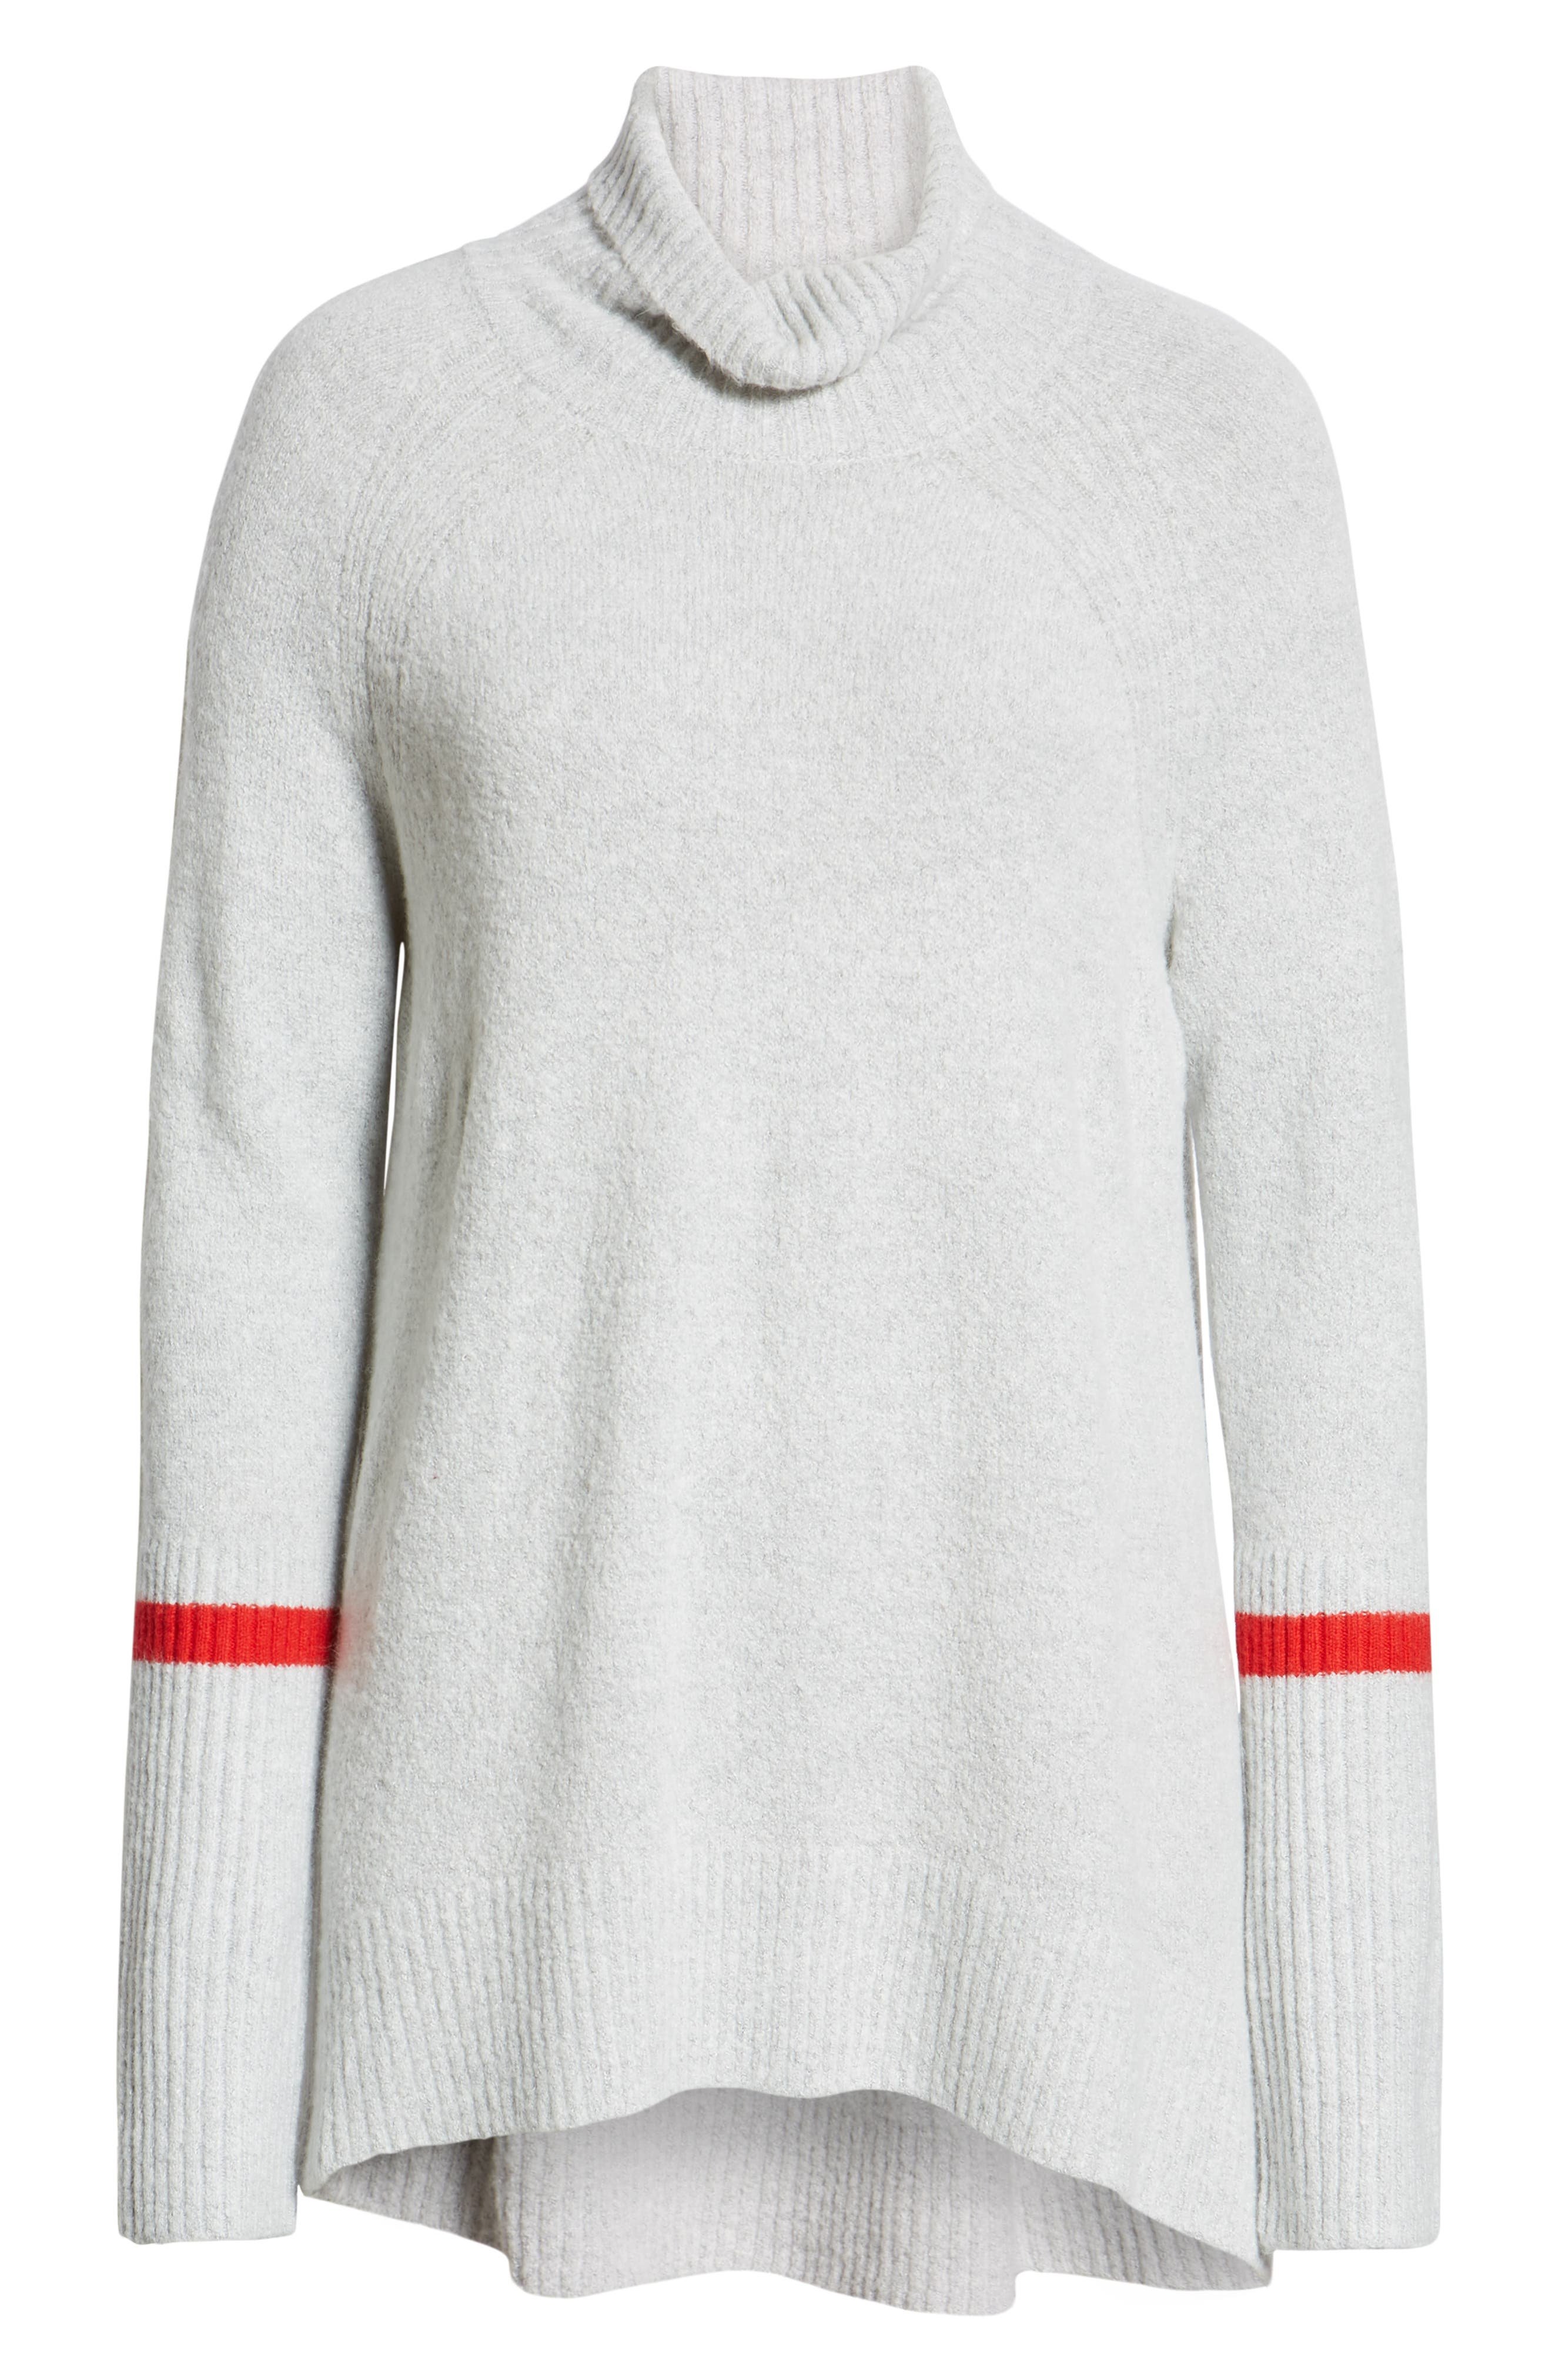 High Low Oversize Wool Blend Sweater,                             Alternate thumbnail 6, color,                             GREY HEATHER- RED